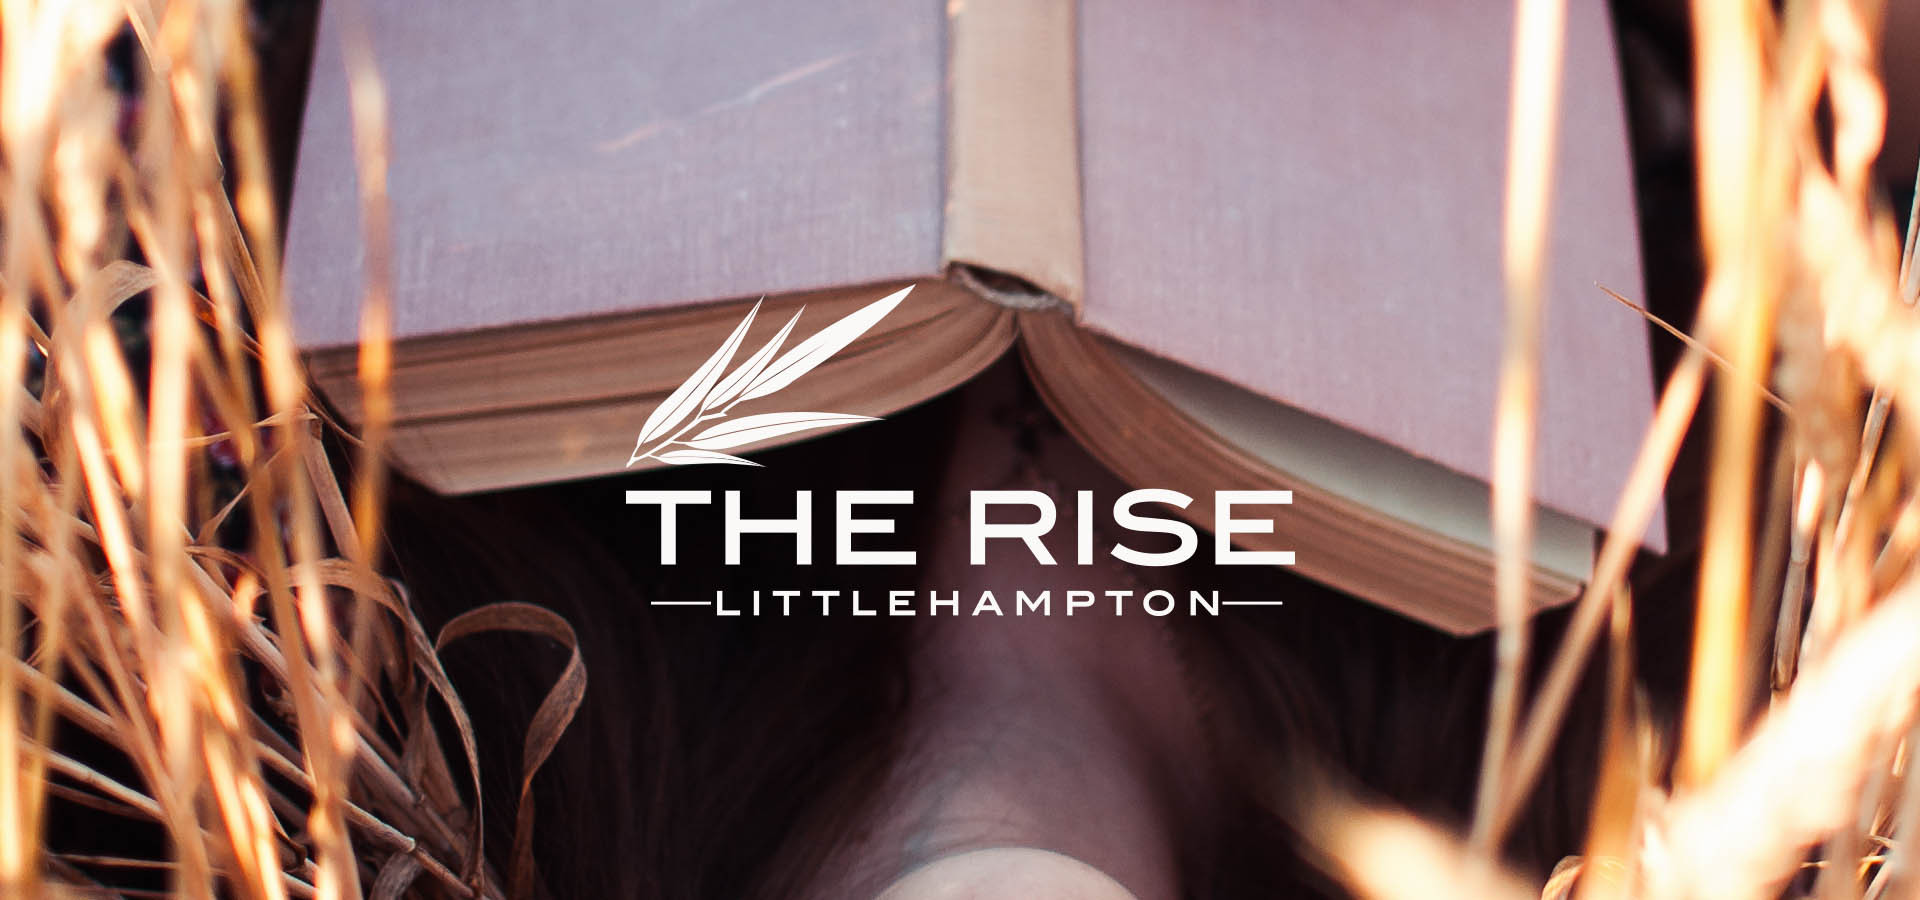 the rise littlehampton book in field slider with logo